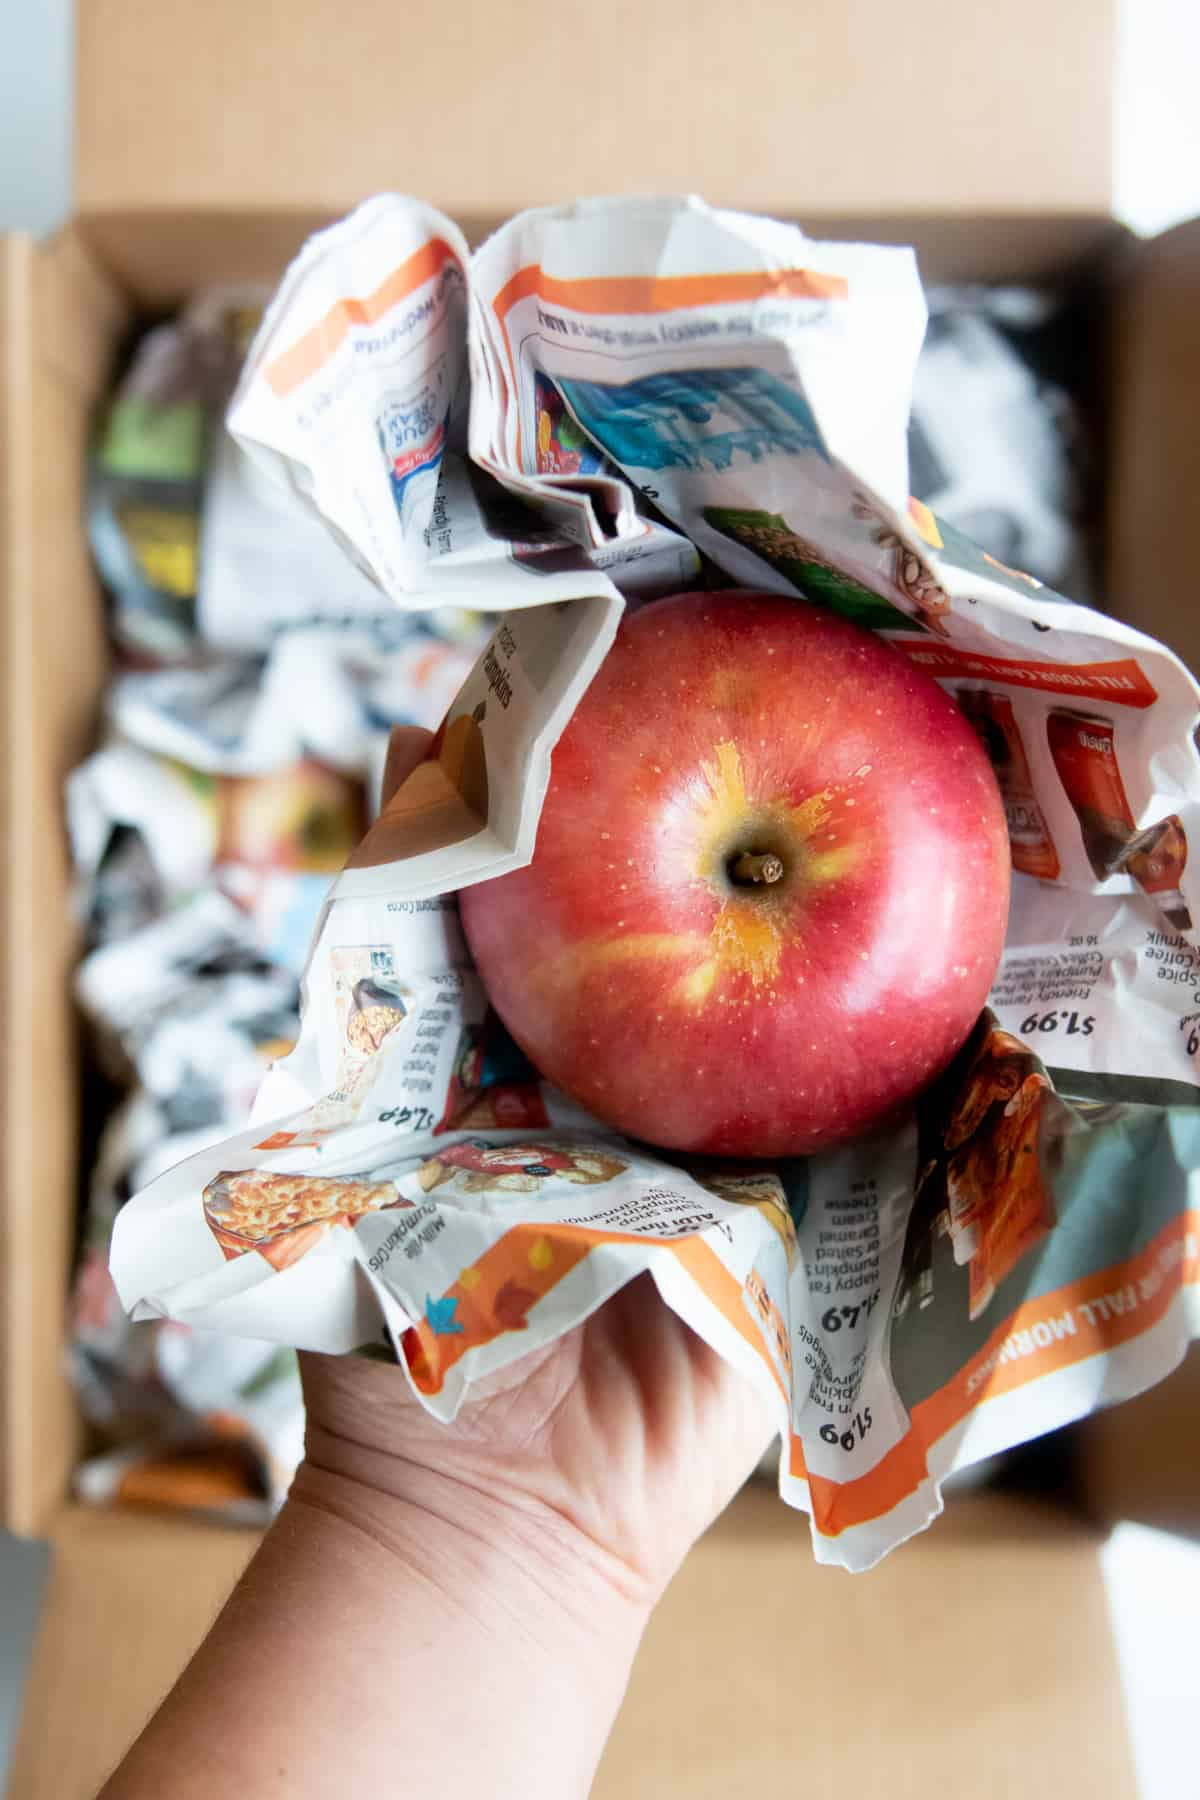 Red apple nestled in newspaper. A hand holds the apple over a cardboard box.